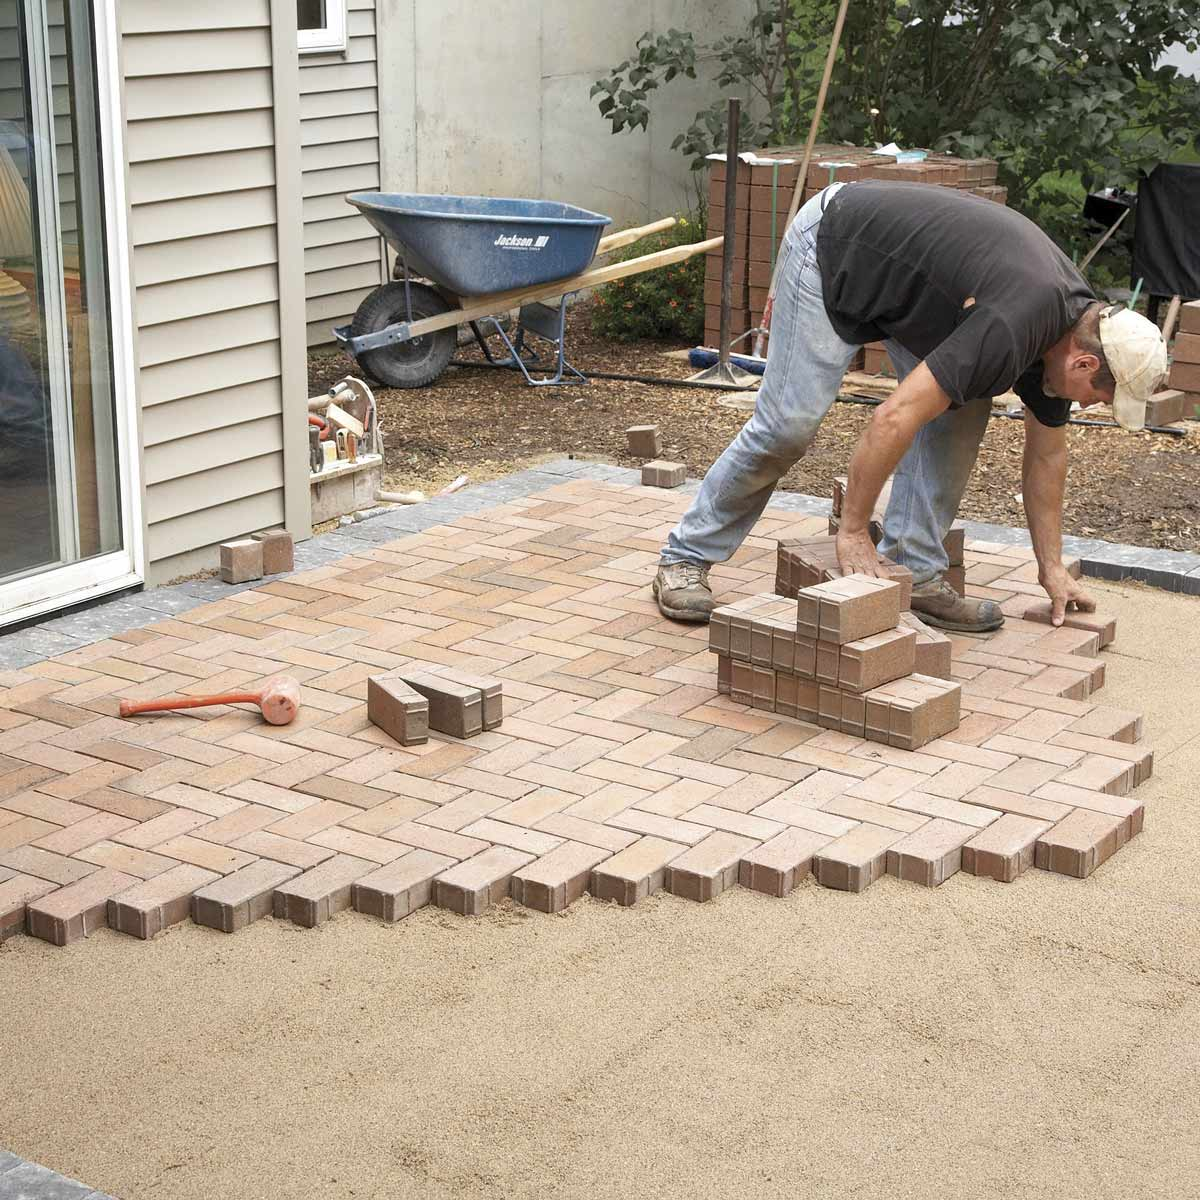 Pavers-Frisco TX Professional Landscapers & Outdoor Living Designs-We offer Landscape Design, Outdoor Patios & Pergolas, Outdoor Living Spaces, Stonescapes, Residential & Commercial Landscaping, Irrigation Installation & Repairs, Drainage Systems, Landscape Lighting, Outdoor Living Spaces, Tree Service, Lawn Service, and more.